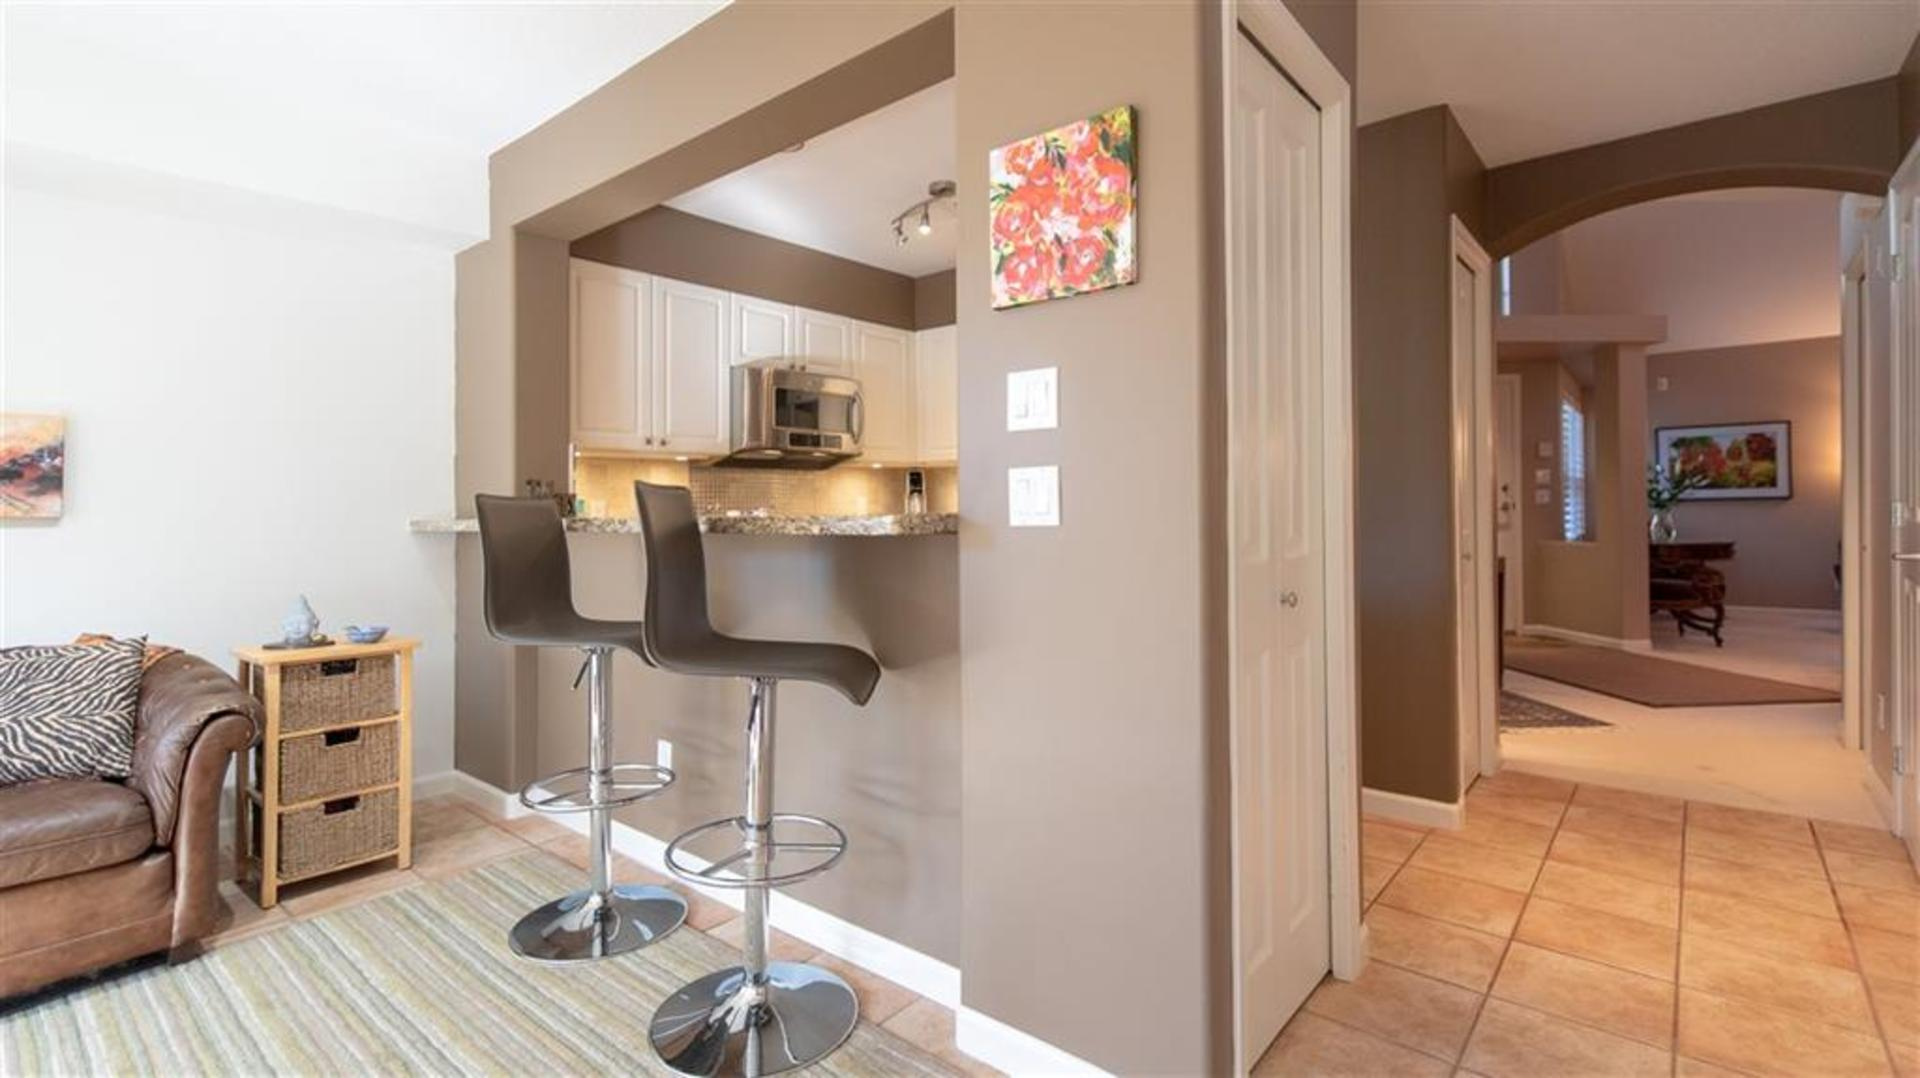 262337785-5 at 57 - 1550 Larkhall Crescent, Northlands, North Vancouver